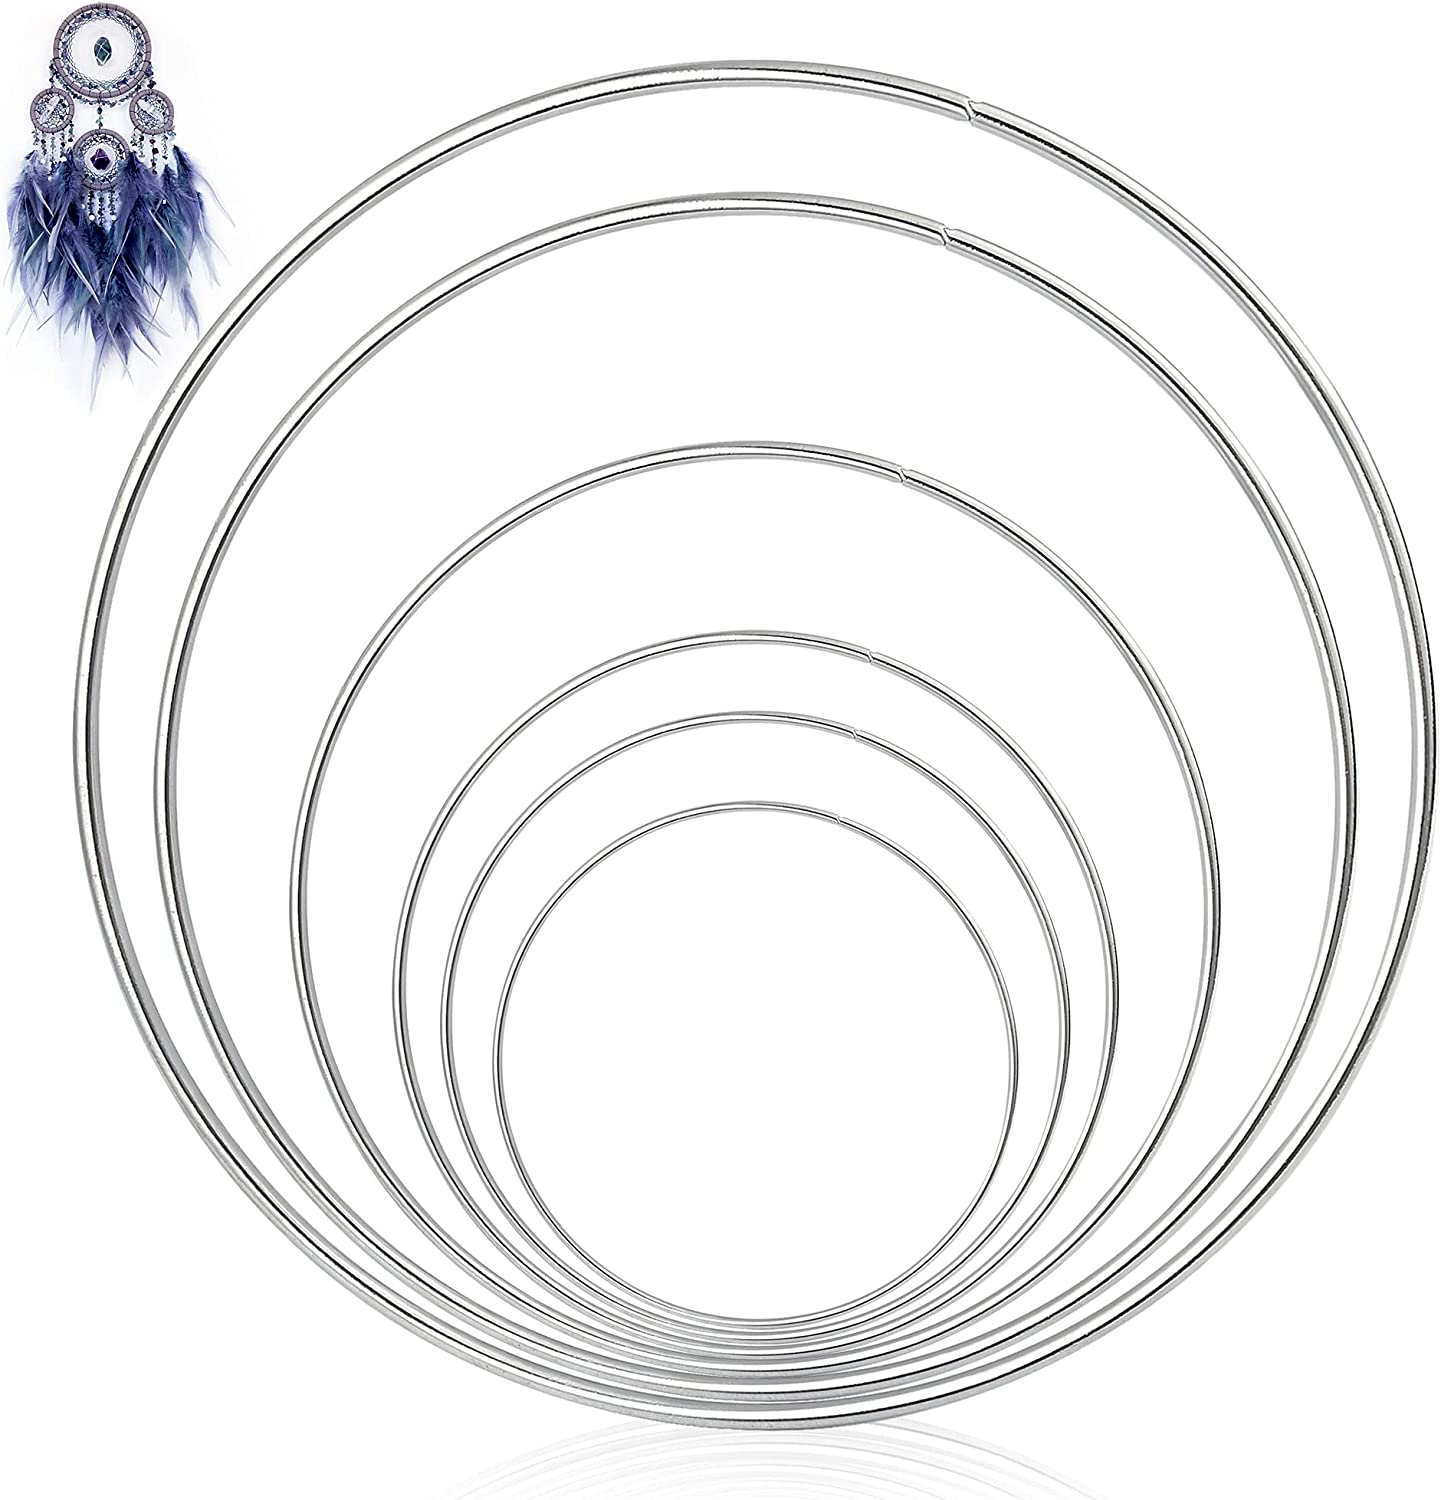 Worldity 24 Pieces Metal Rings Hoops for Dream Catcher, Rustproof Smooth Iron Wreath Ring Macrame Hoop for Crafts, Decor, DIY Dream Catcher(Silver)